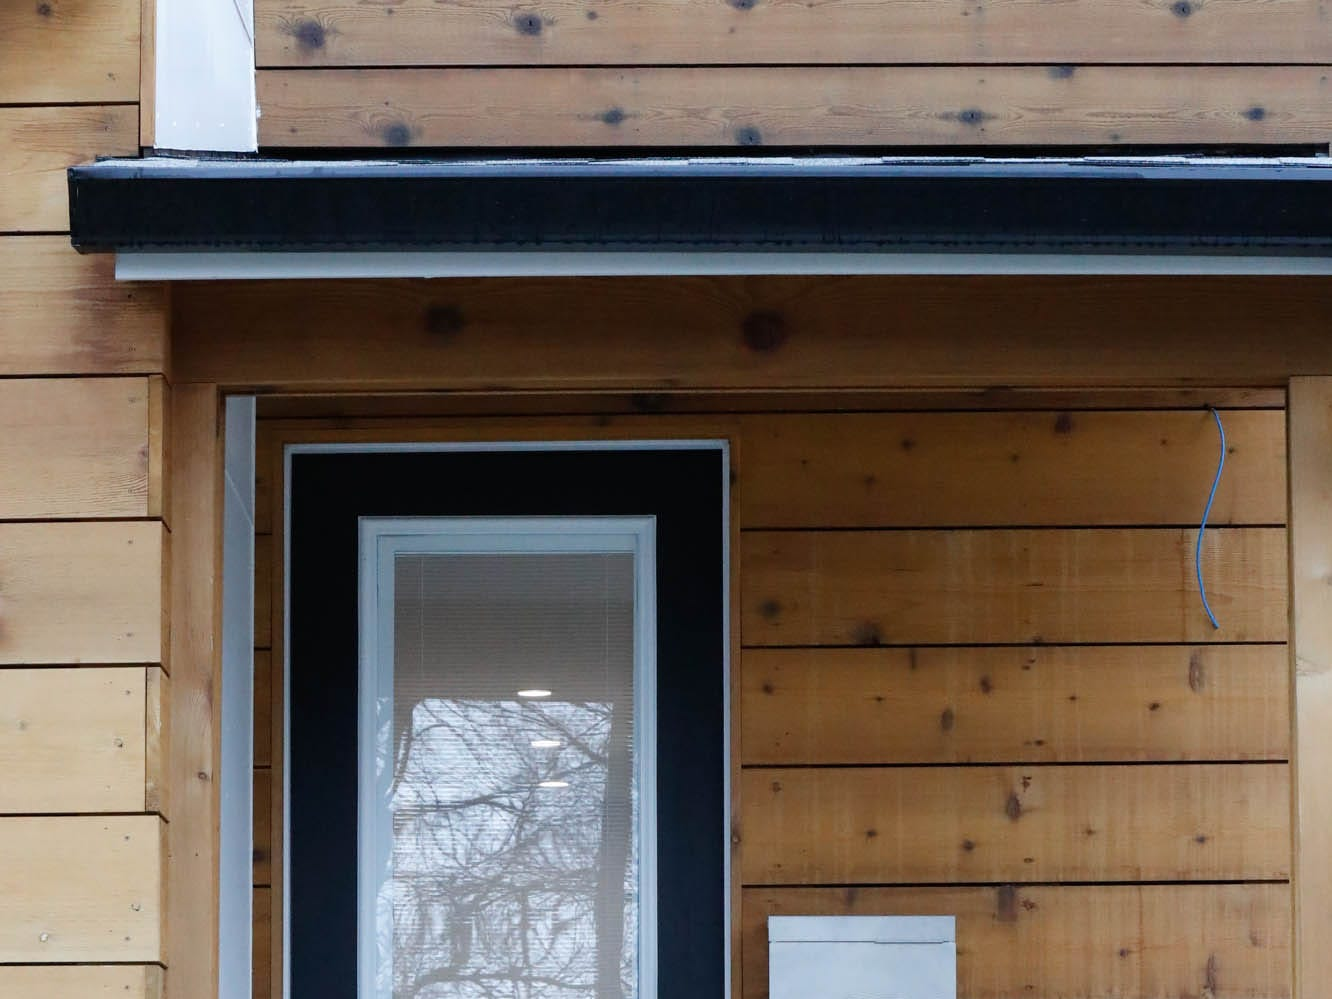 A modern front door allows the maximum amount of light in a newly built modern architectural home up for sale at 1134 Woodlawn Ave., Indianapolis, Ind., 46203, in the heart of the historic Fountain Square neighborhood on Wednesday, January 23, 2019. The three-story home, which features 2,030-square-feet and an open space concept tile and hardwood floors are priced at $479,900.